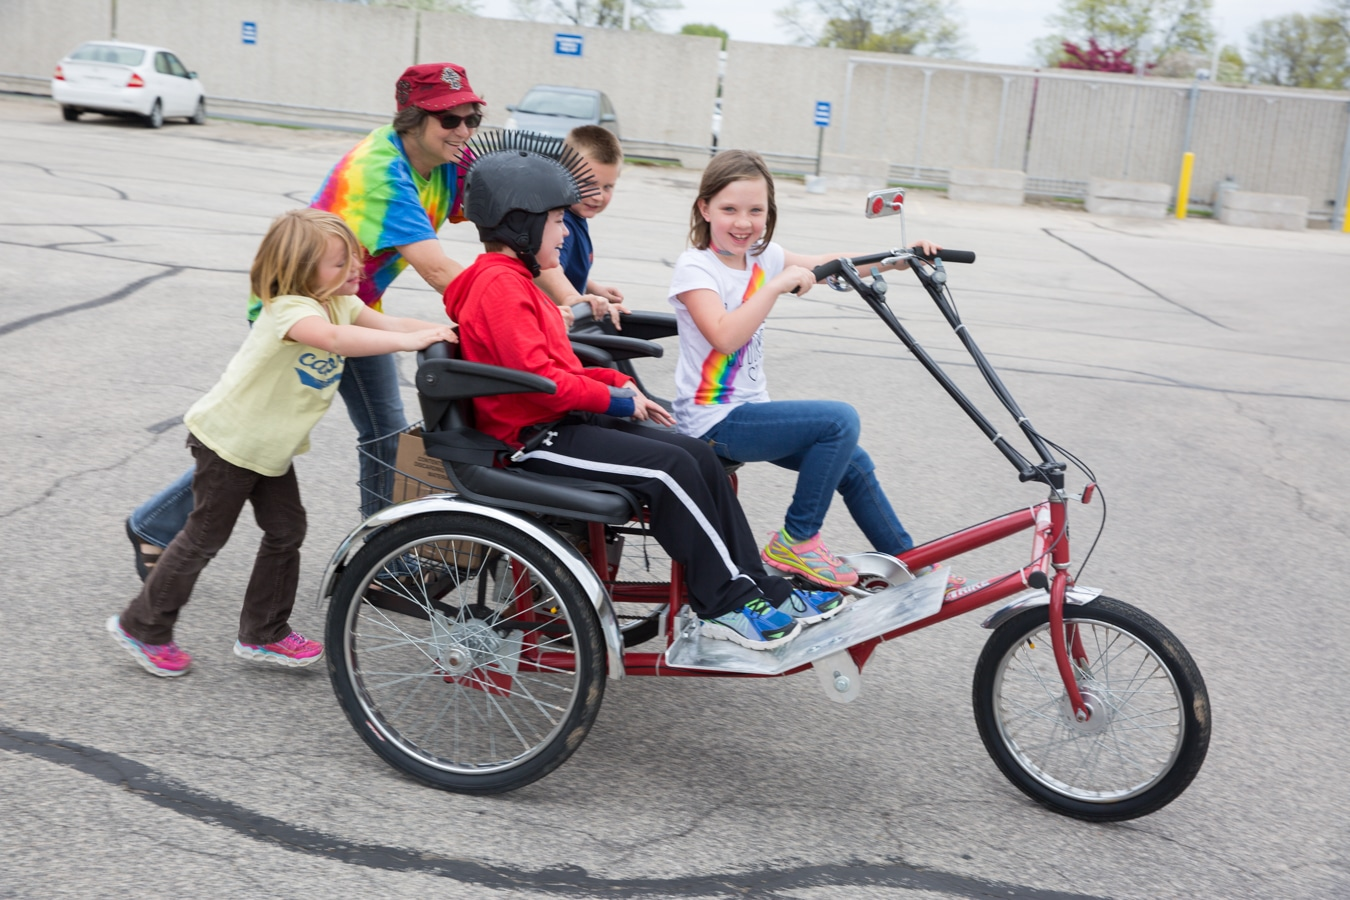 Mason and a girl on trike with mother and two children behind